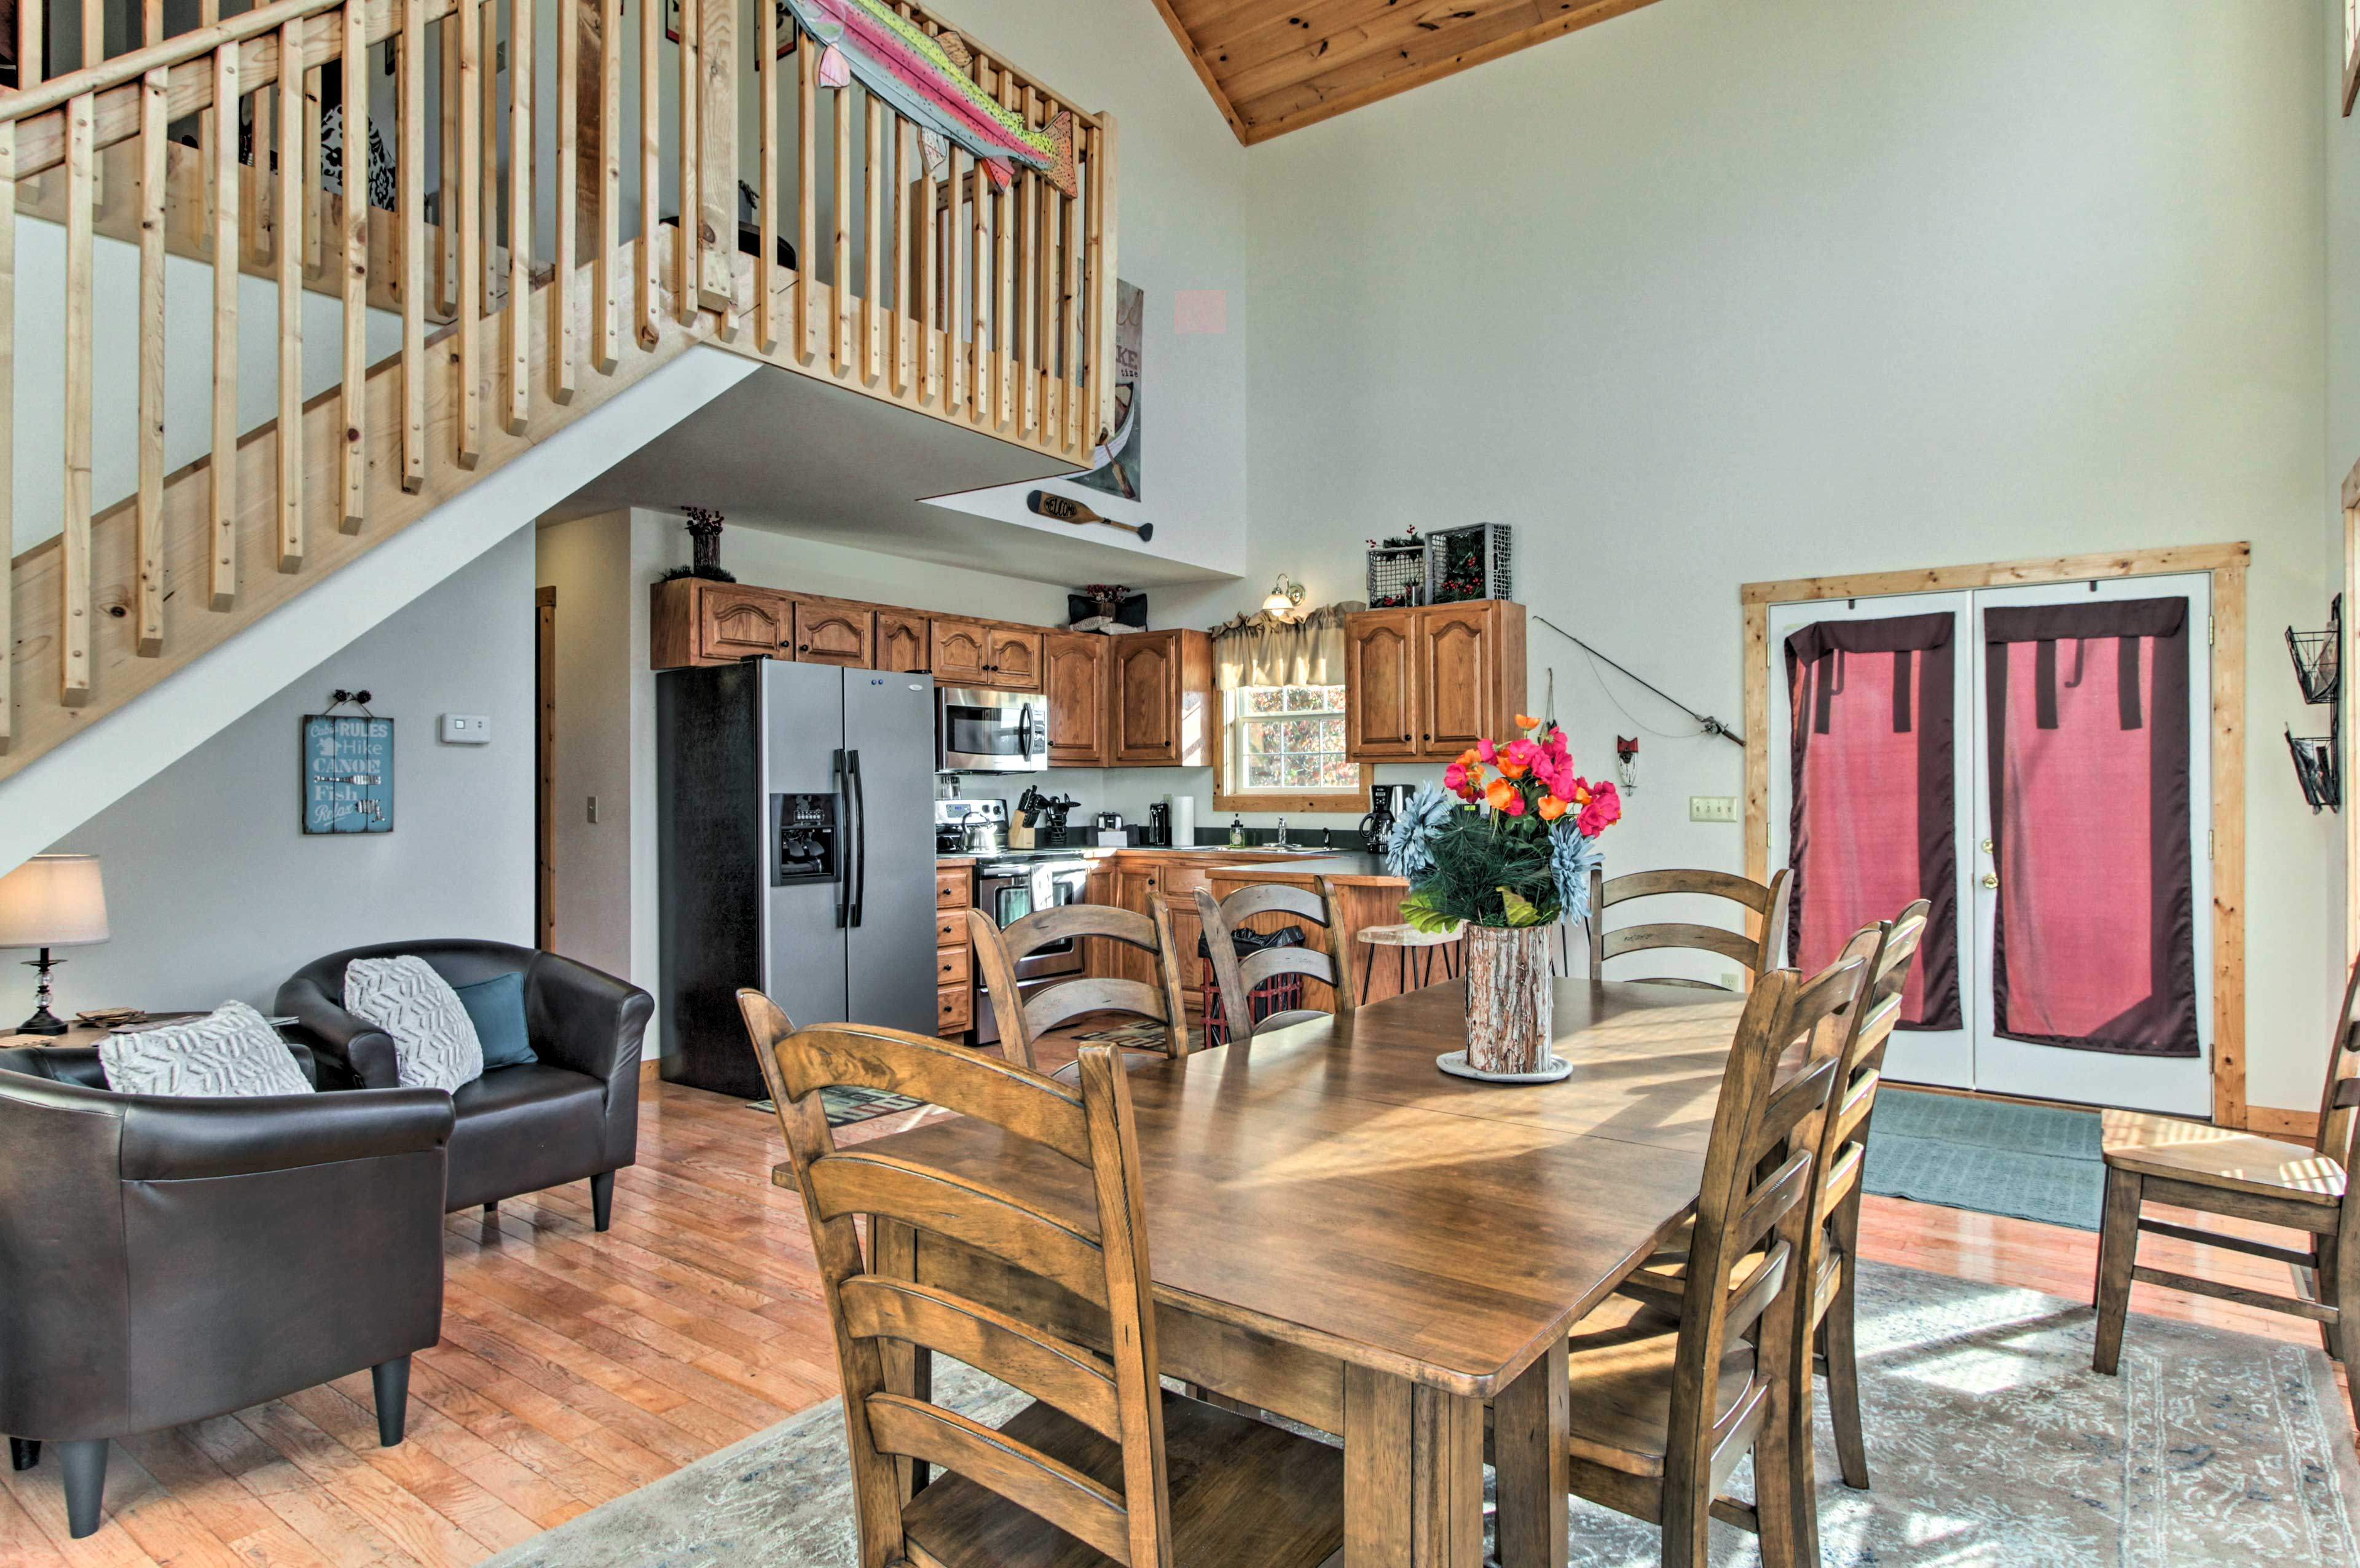 The first floor features the fully equipped kitchen and dining area.